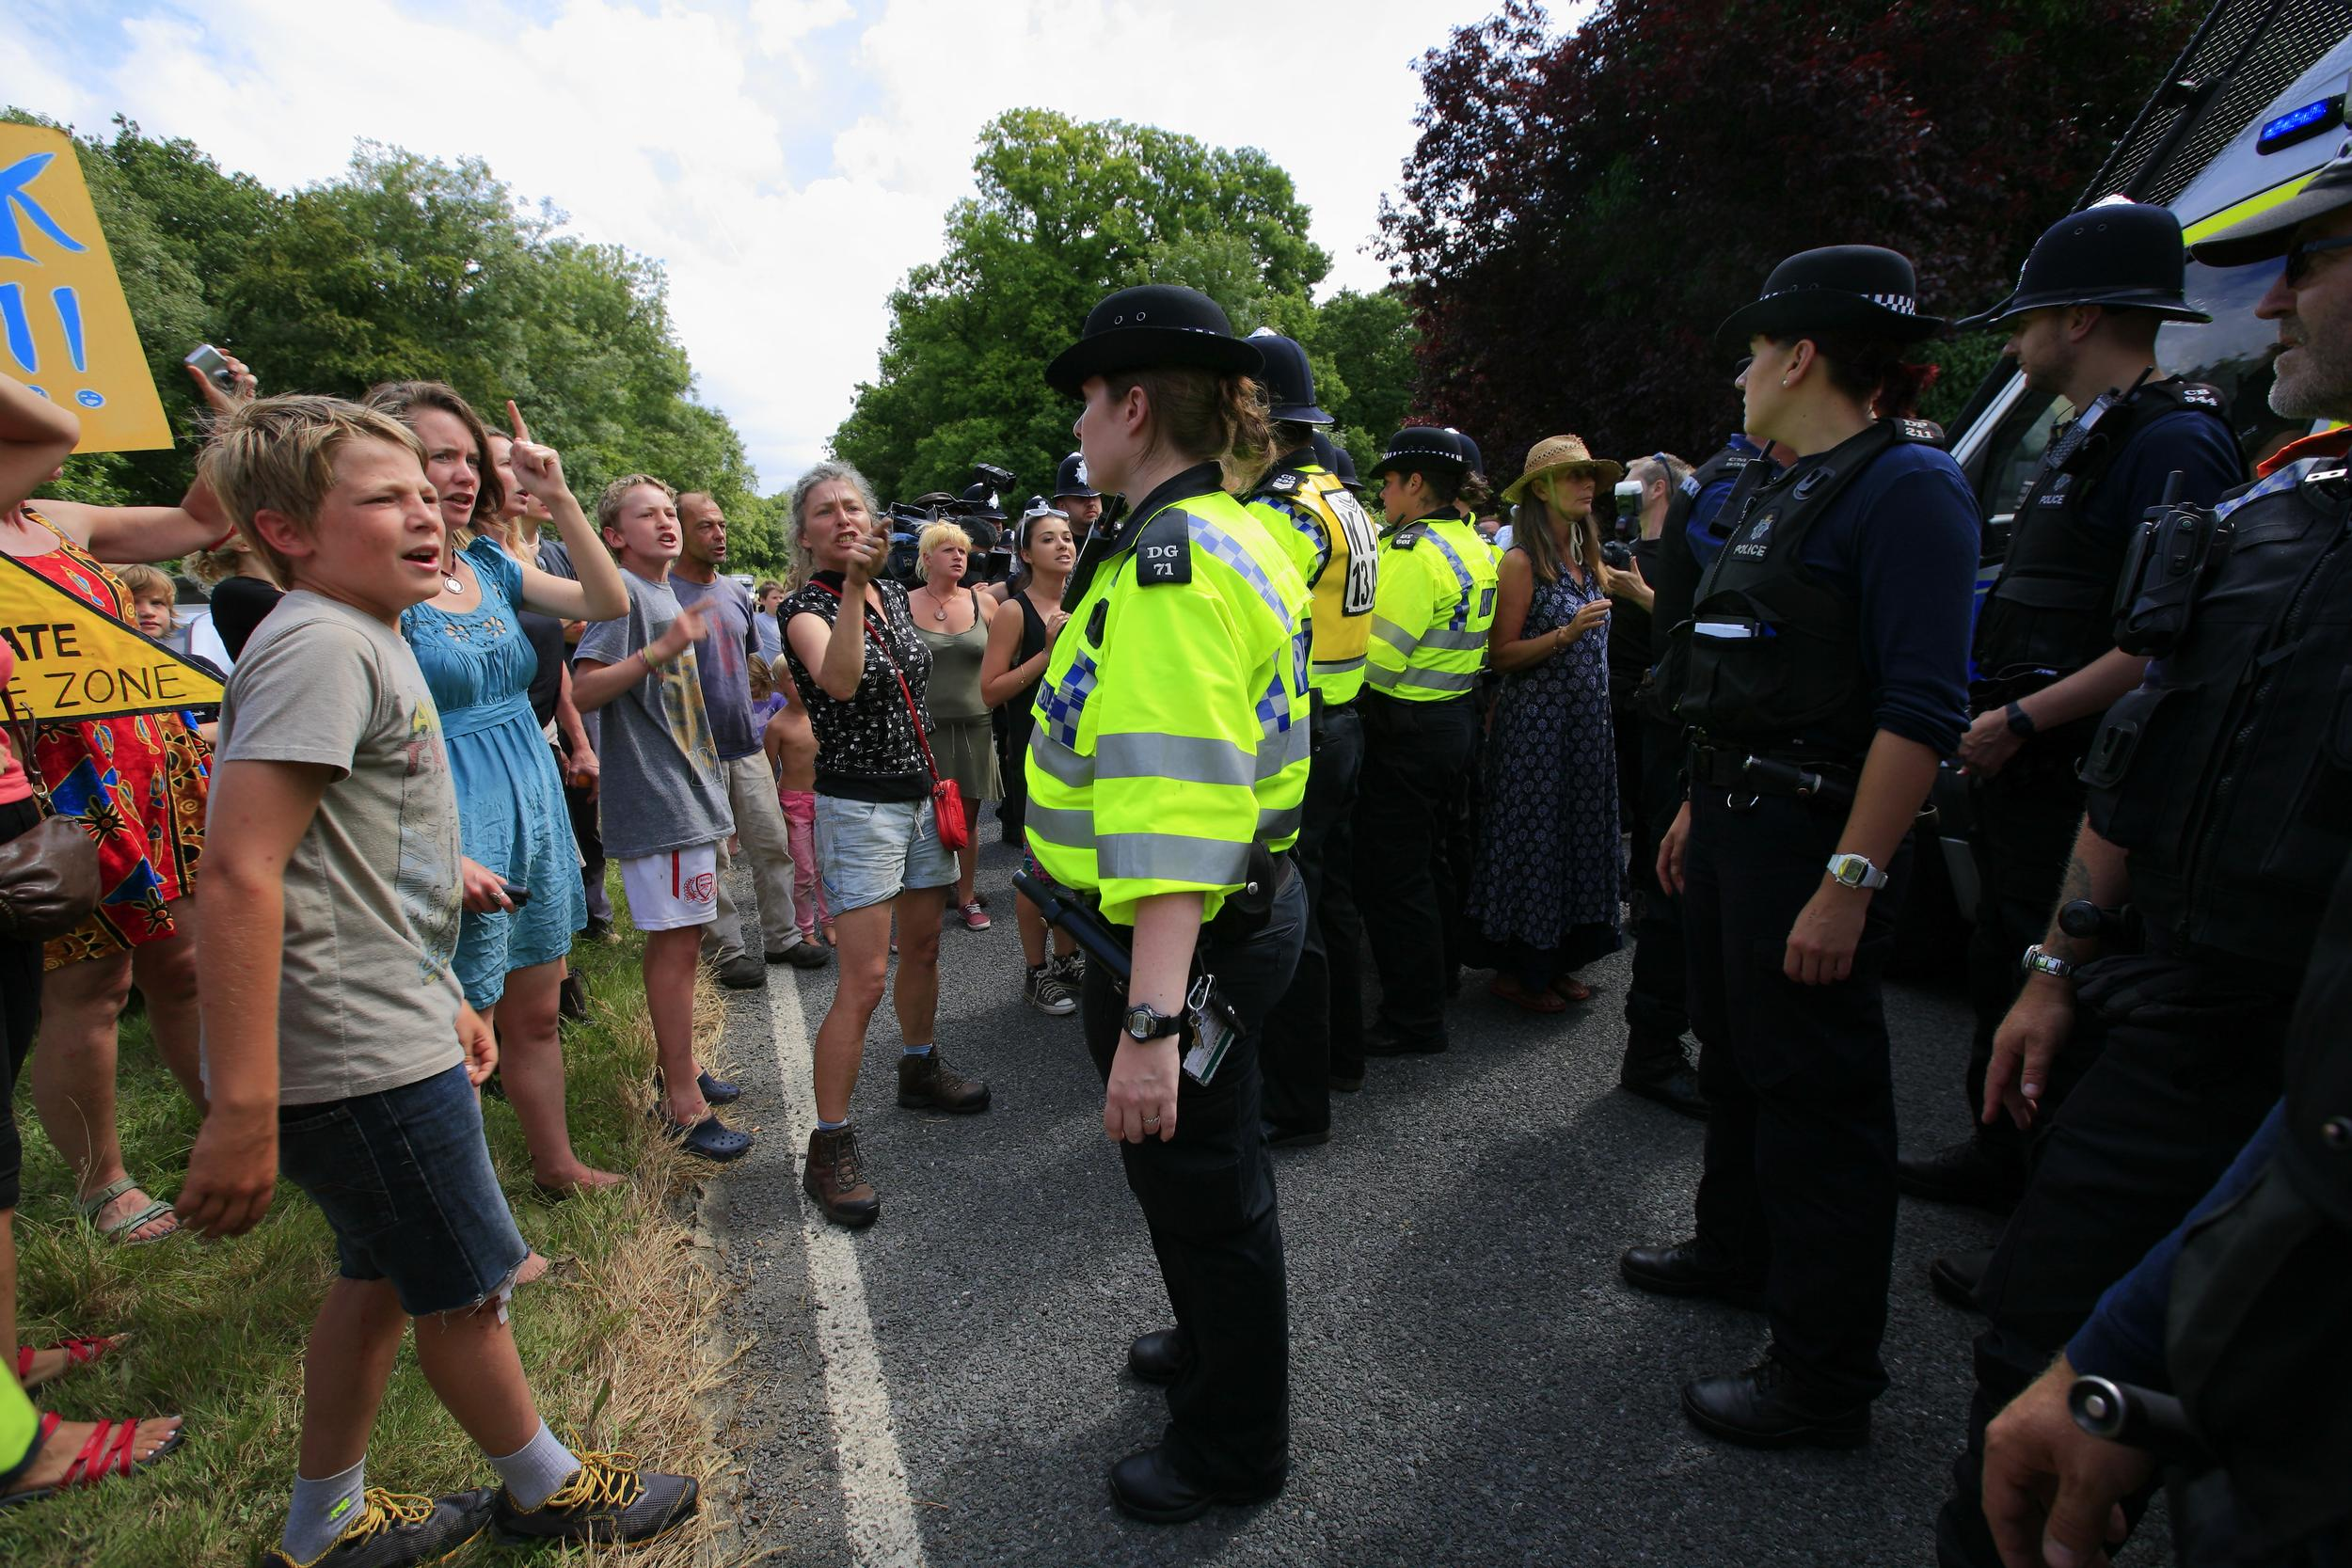 police officers stand face to face with anti-fracking protesters